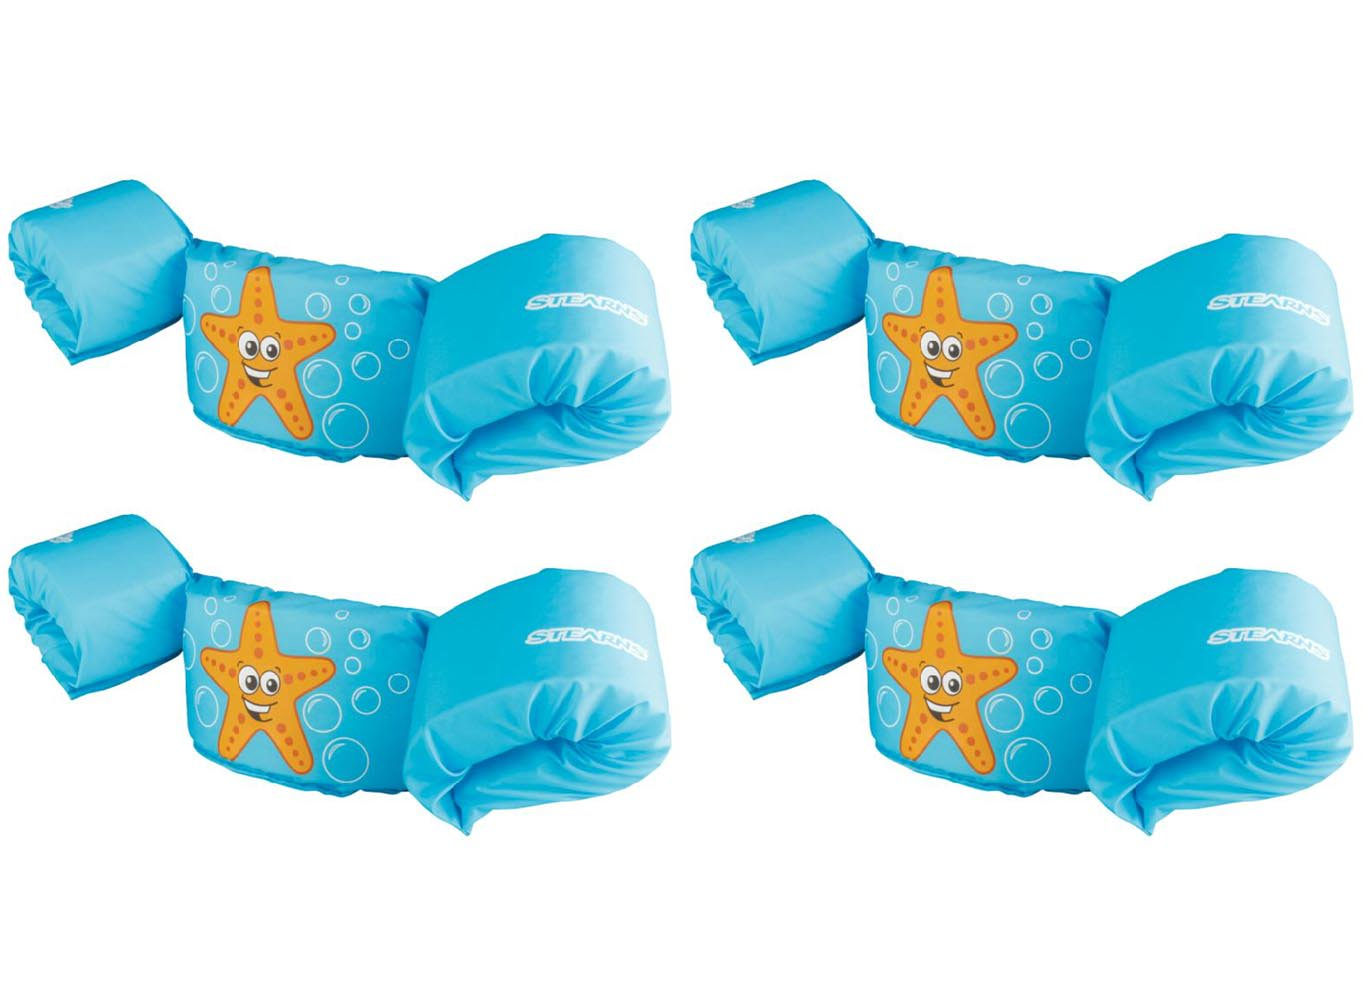 New (4) COLEMAN Stearns Kids Puddle Jumper Swimming Life Jackets | Blue Starfish by COLEMAN